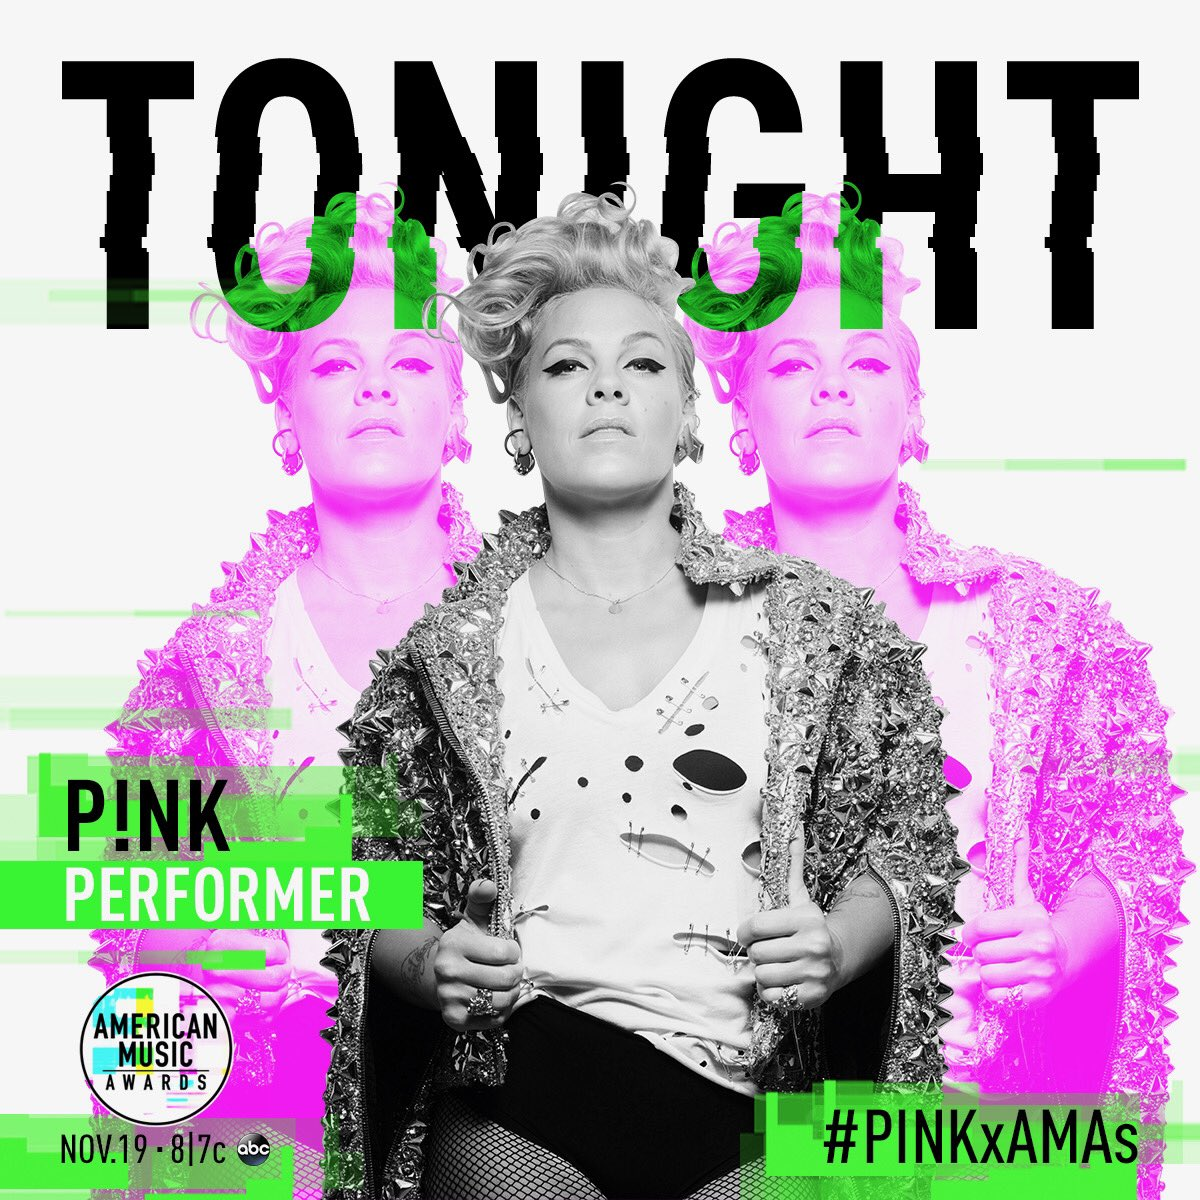 I'm SO EXCITED to perform at the @AMAs TONIGHT! It's going to be amazing. LIVE 8/7c on ABC! #PINKxAMAs #AMAs https://t.co/ZHBQEJbhzC